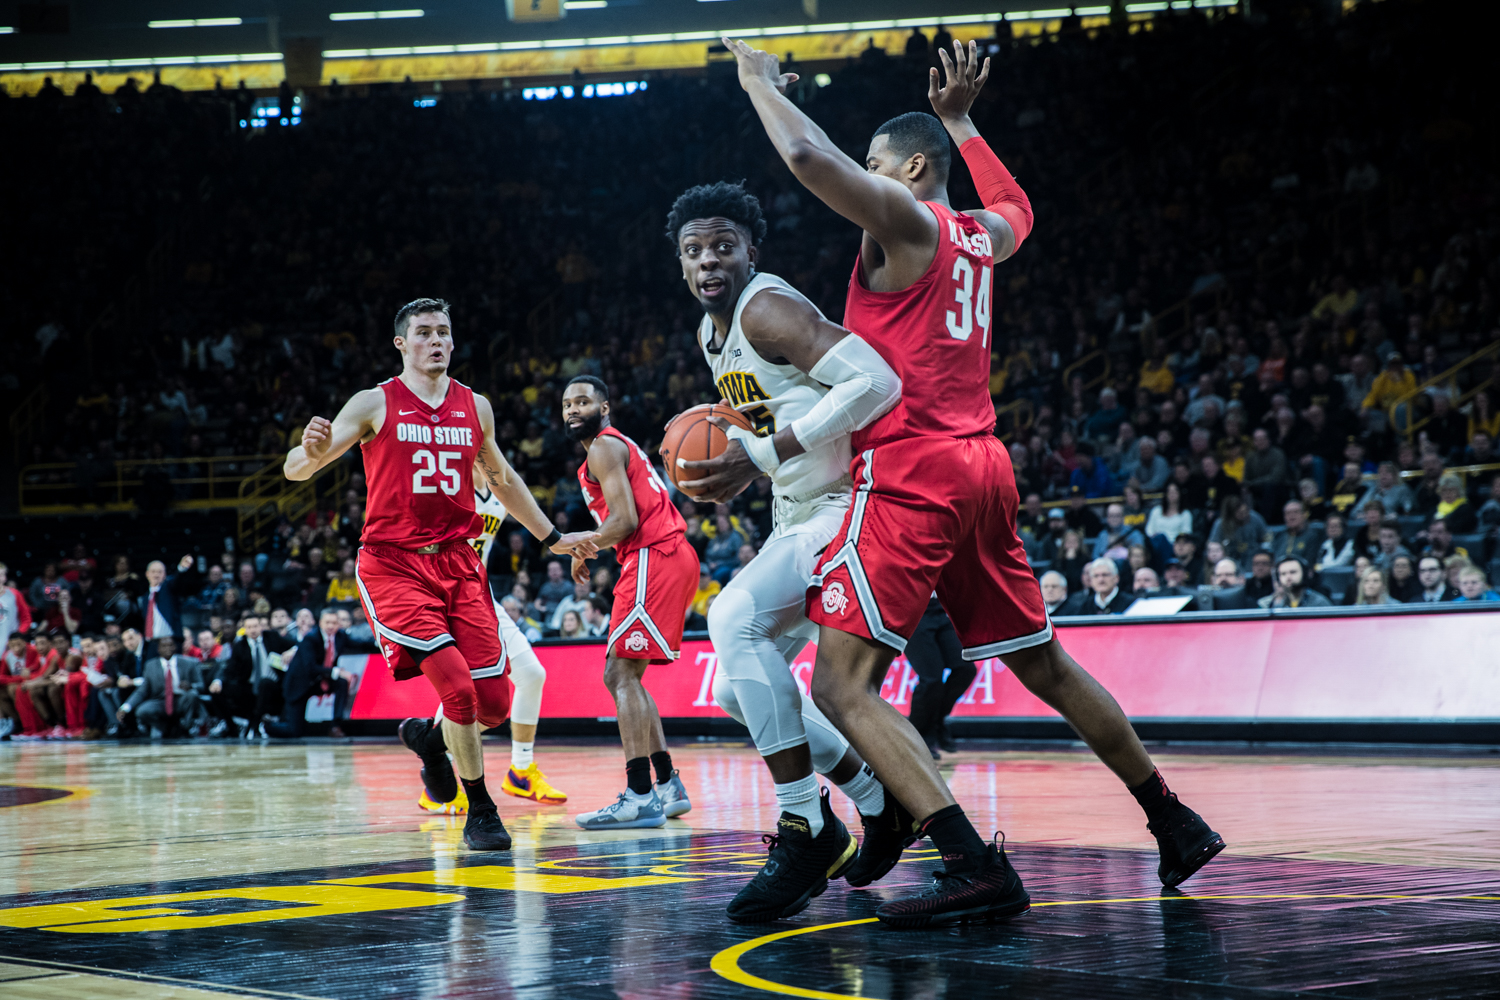 Iowa+forward+Tyler+Cook+drives+to+the+net+during+a+men%27s+basketball+matchup+between+Ohio+State+and+Iowa+at+Carver-Hawkeye+Arena+on+Saturday%2C+January+12%2C+2019.+The+Hawkeyes+defeated+the+Buckeyes%2C+72-62.